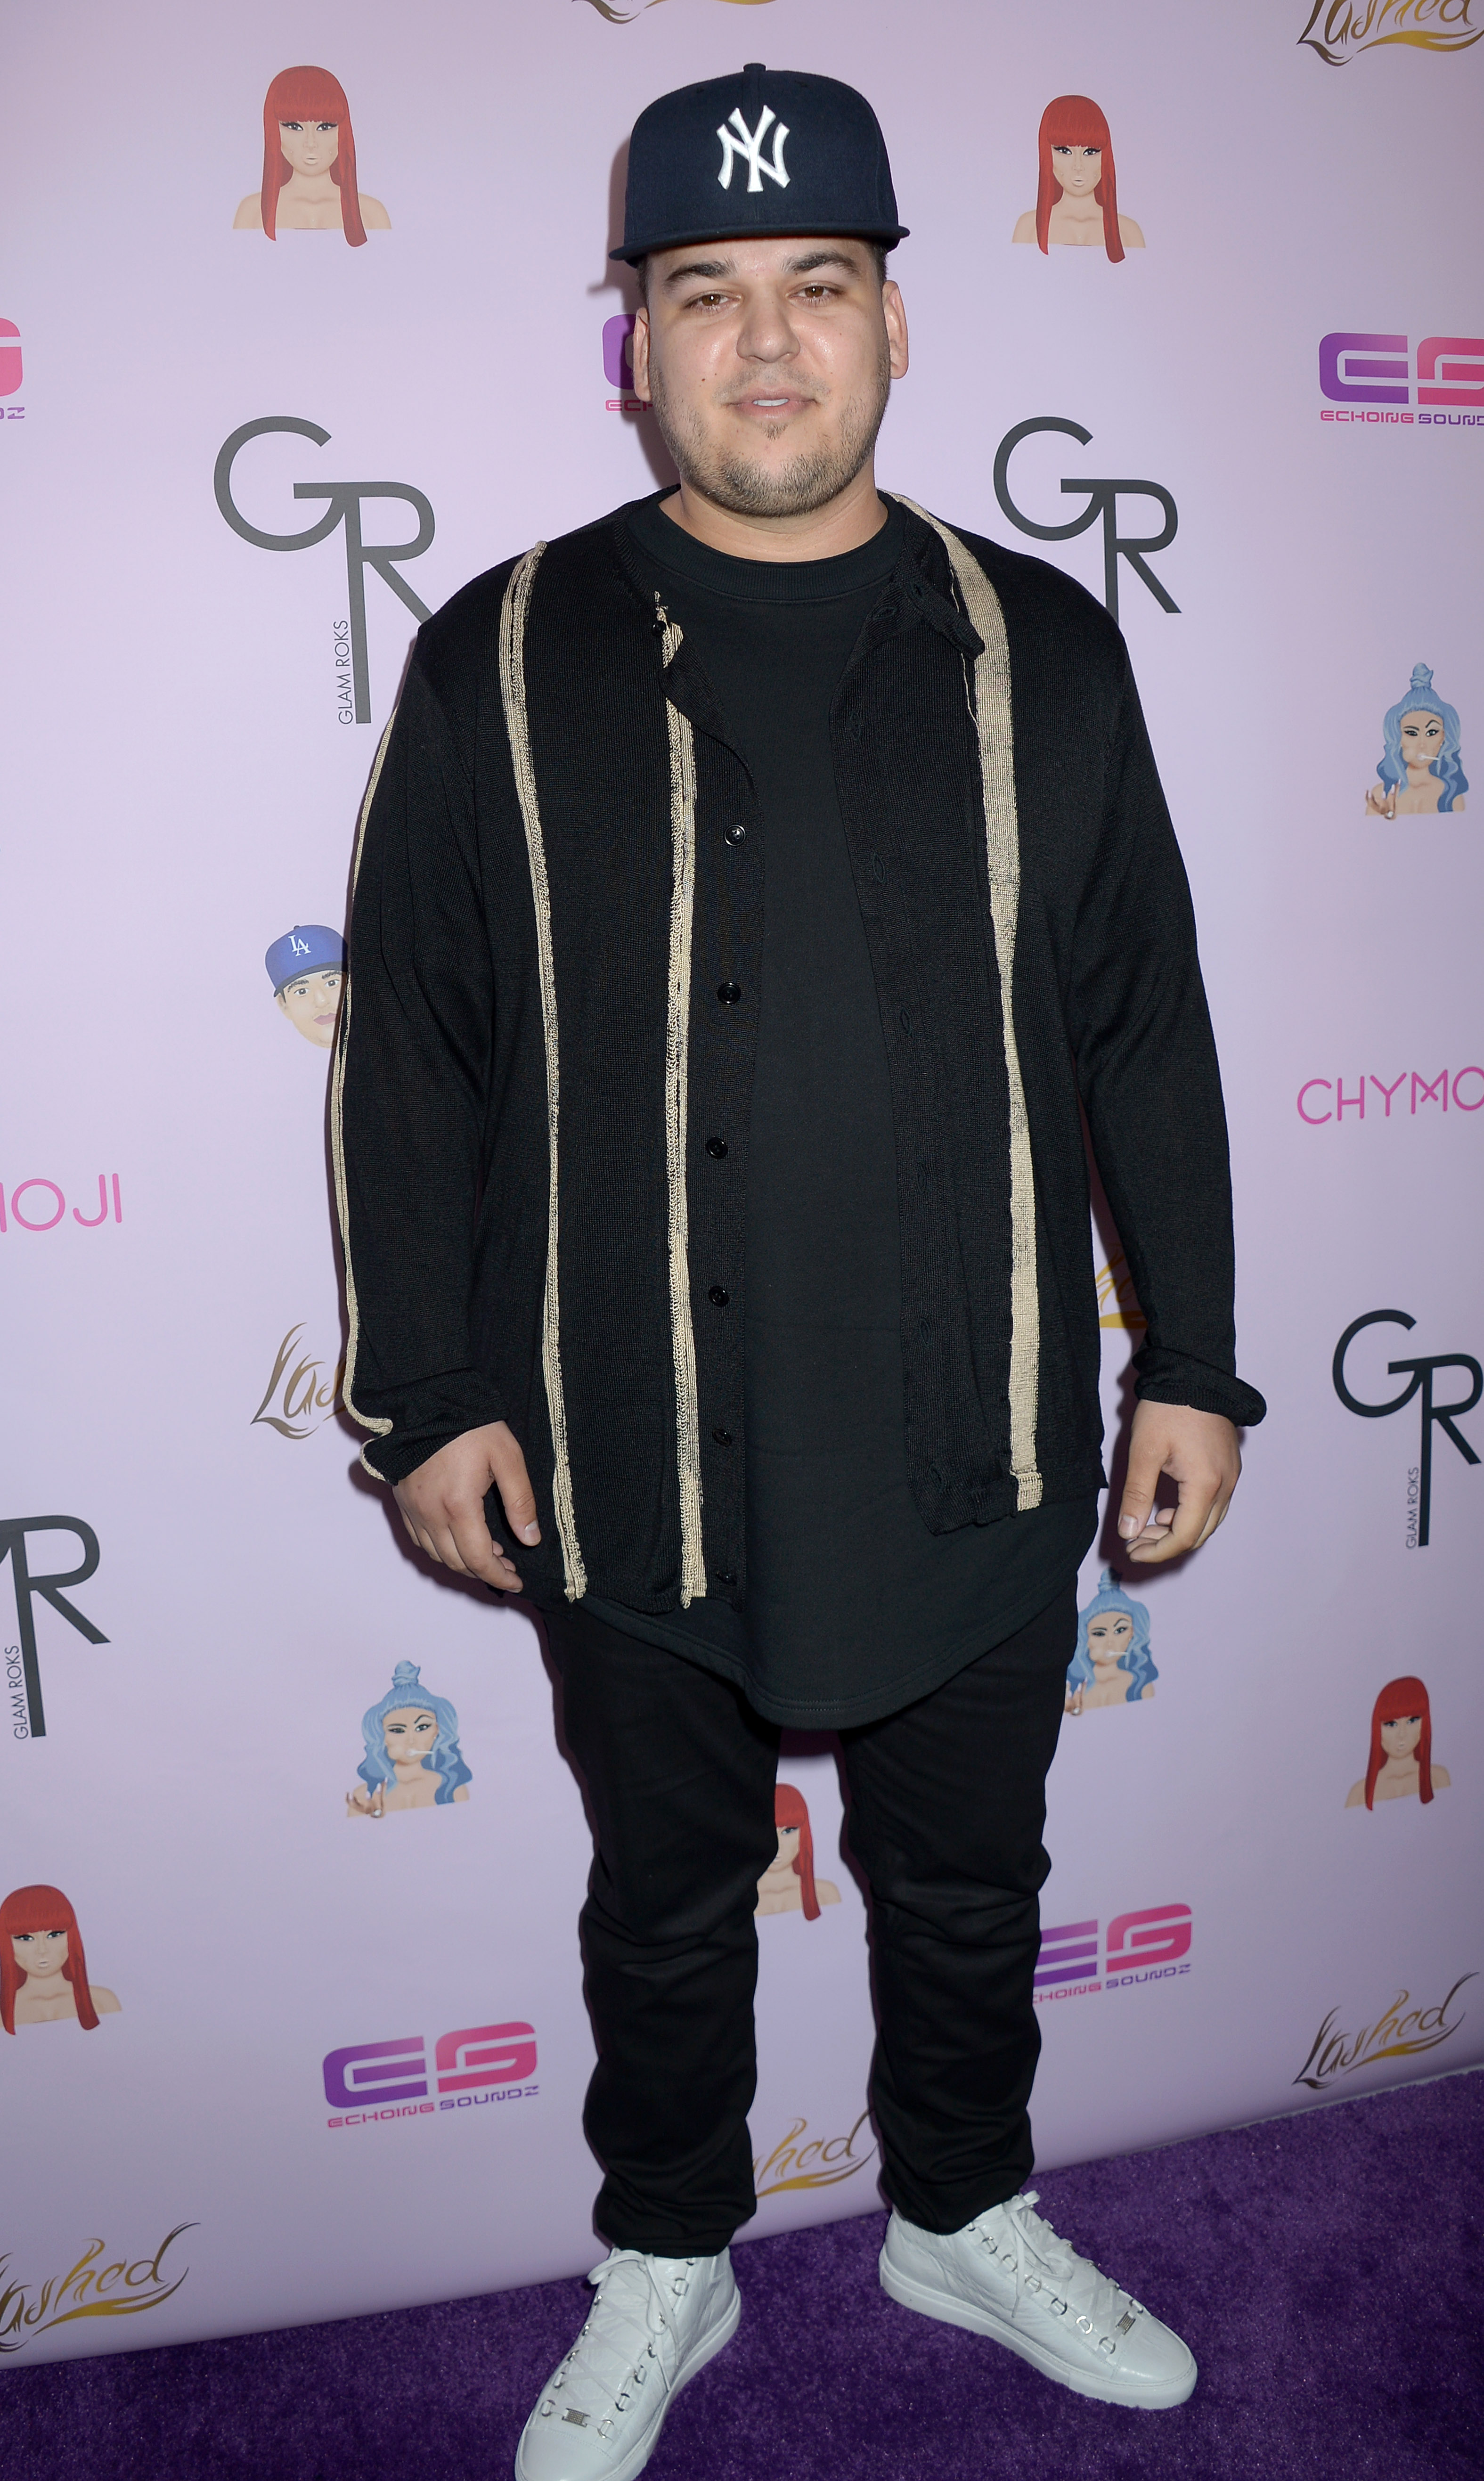 Rob Kardashian Hasn't Been Spotted in Public in Over 800 Days: 'No One Ever Sees Him'